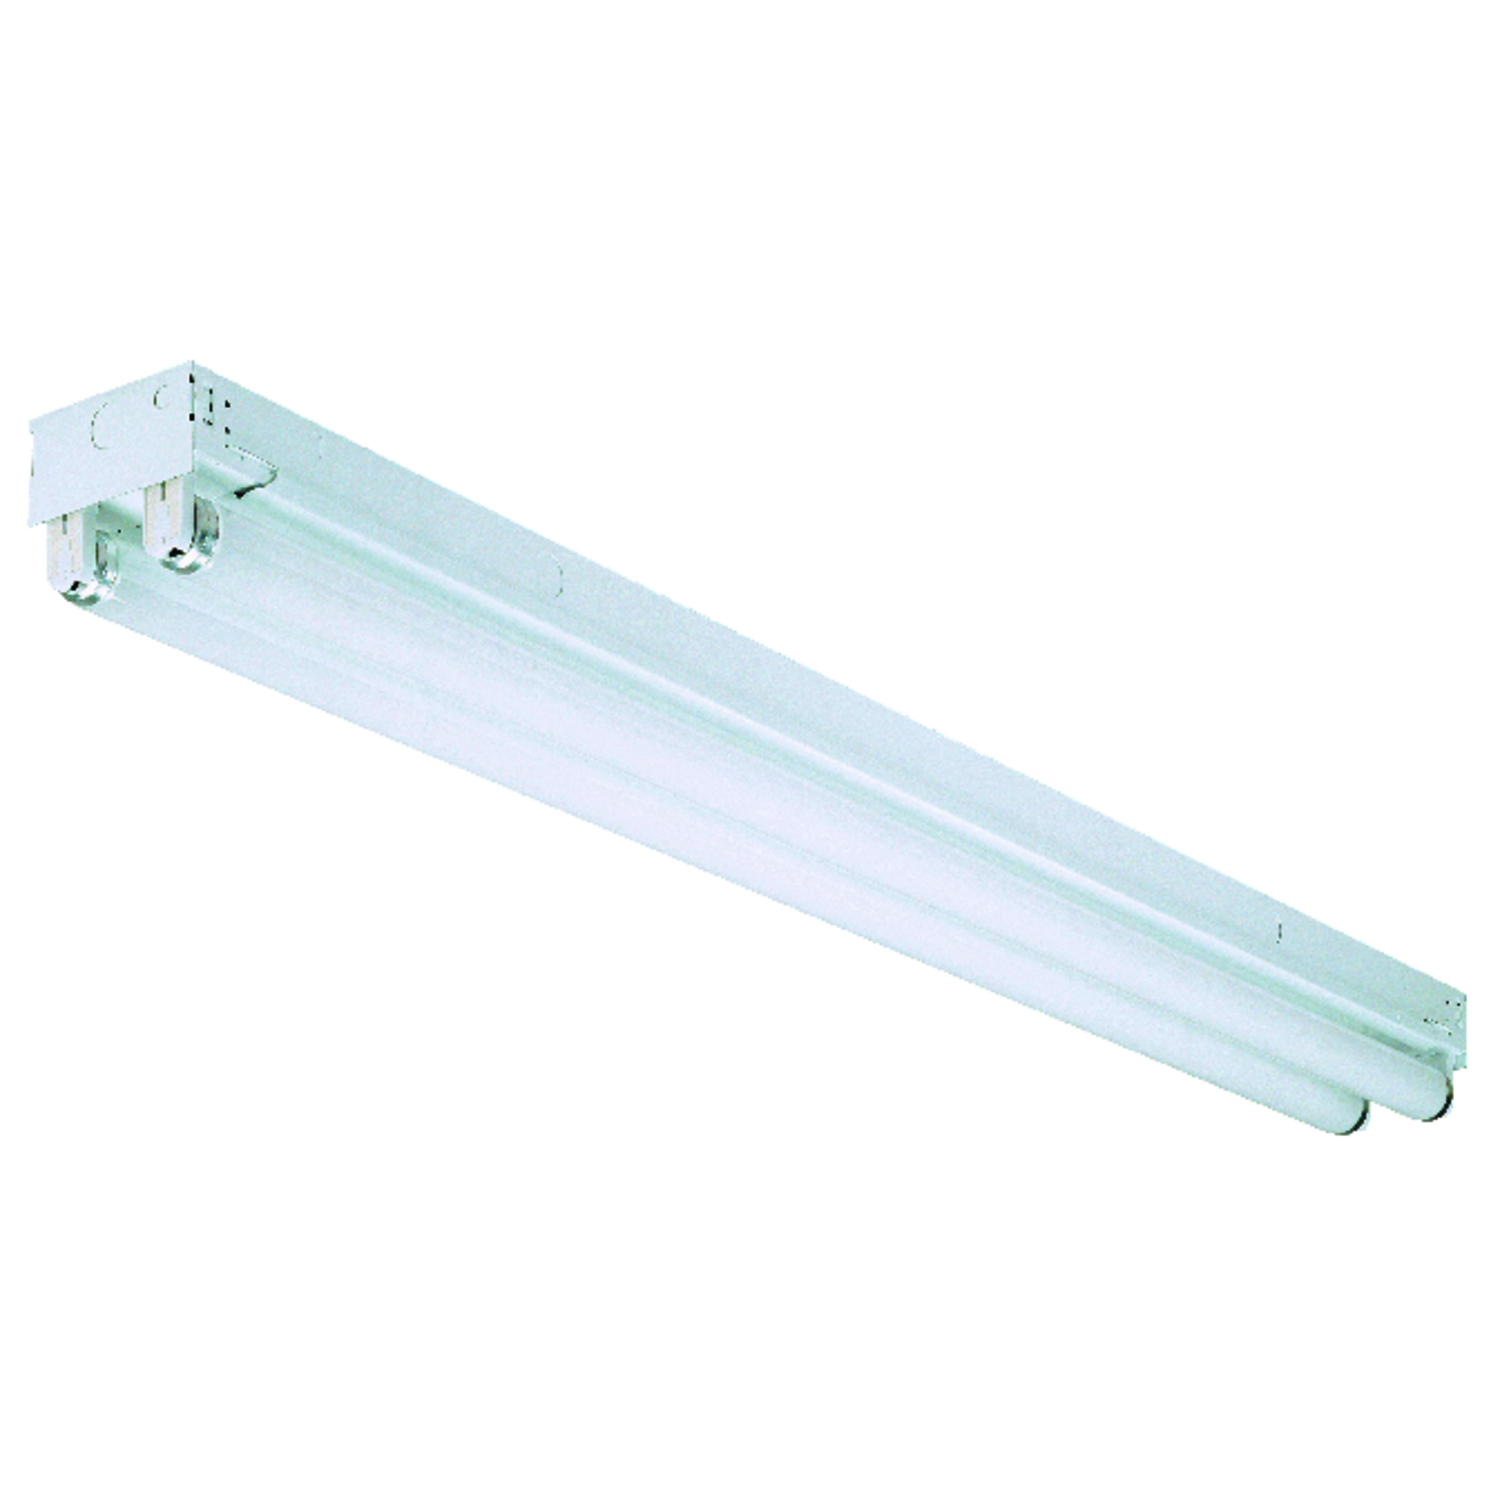 Lithonia Lighting  48 in. L Hardwired  Strip Light  White